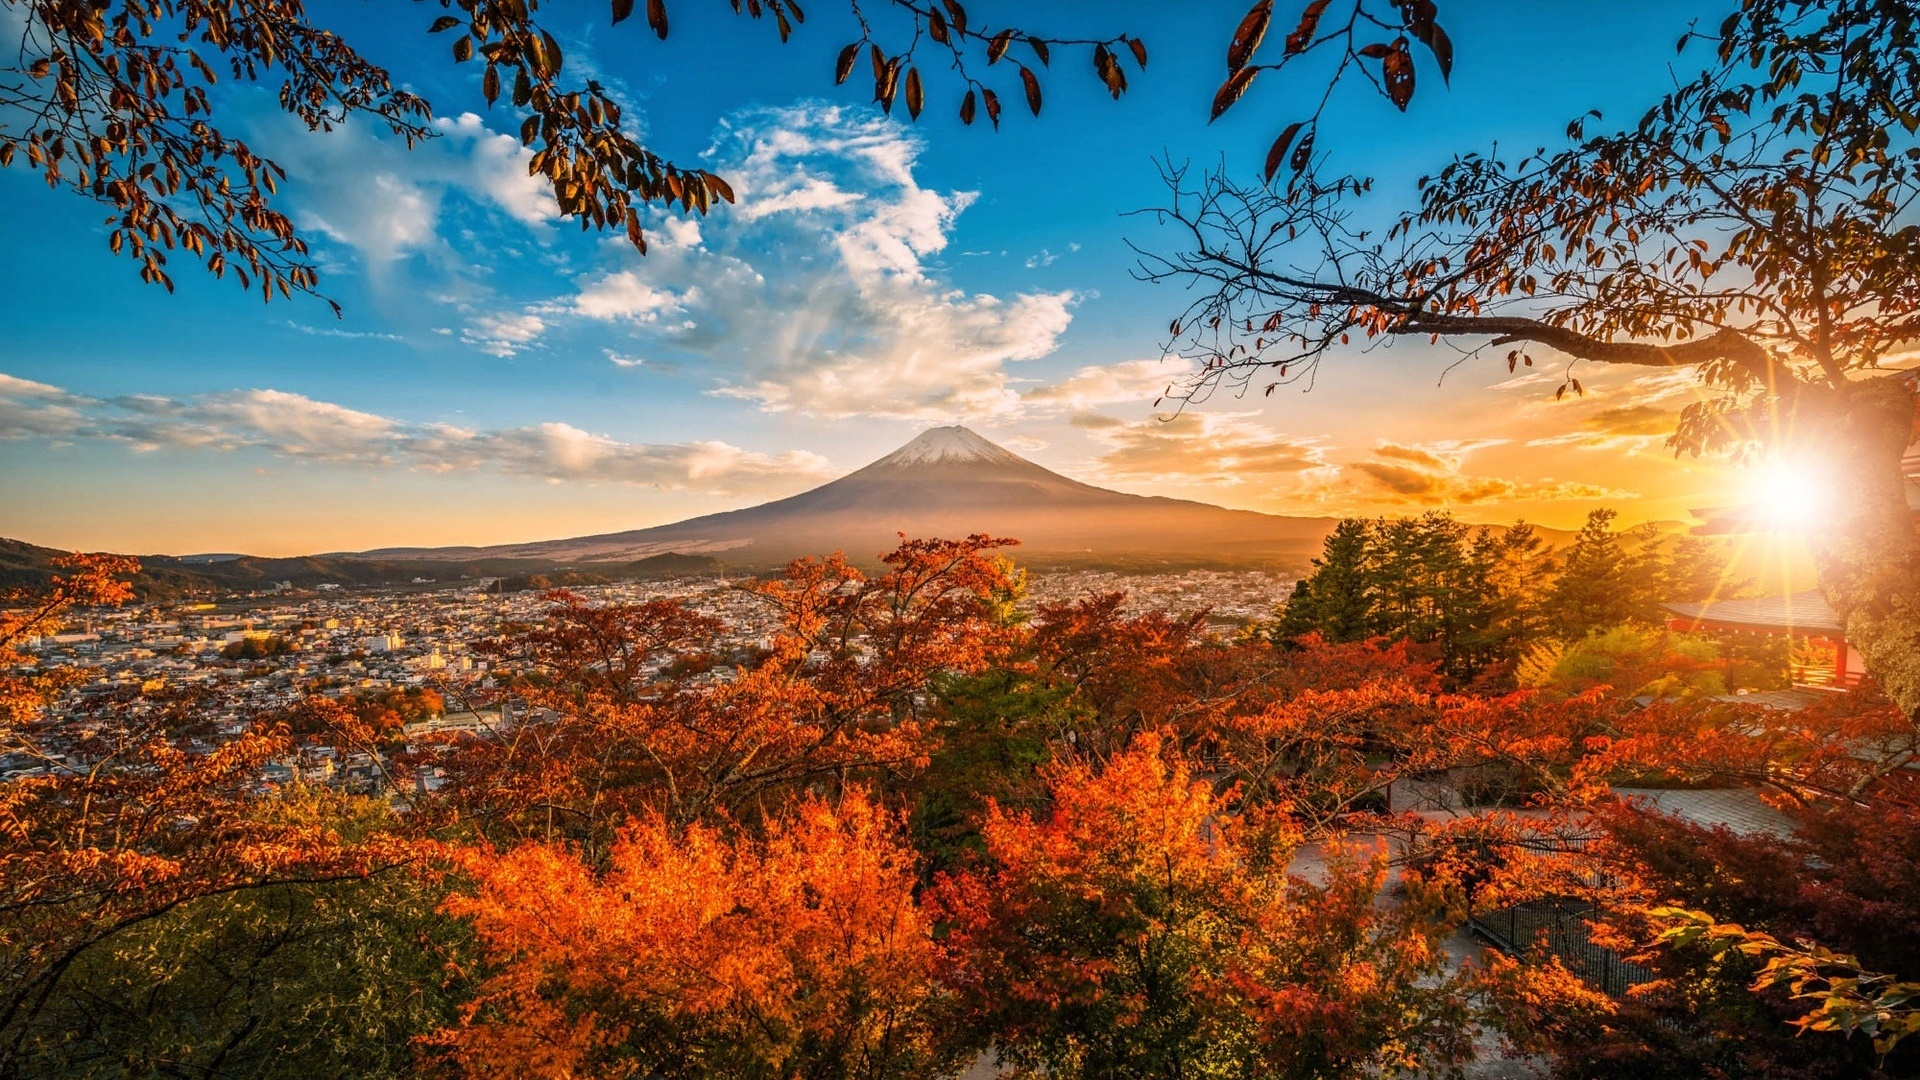 Mount Fuji at fall wallpaper